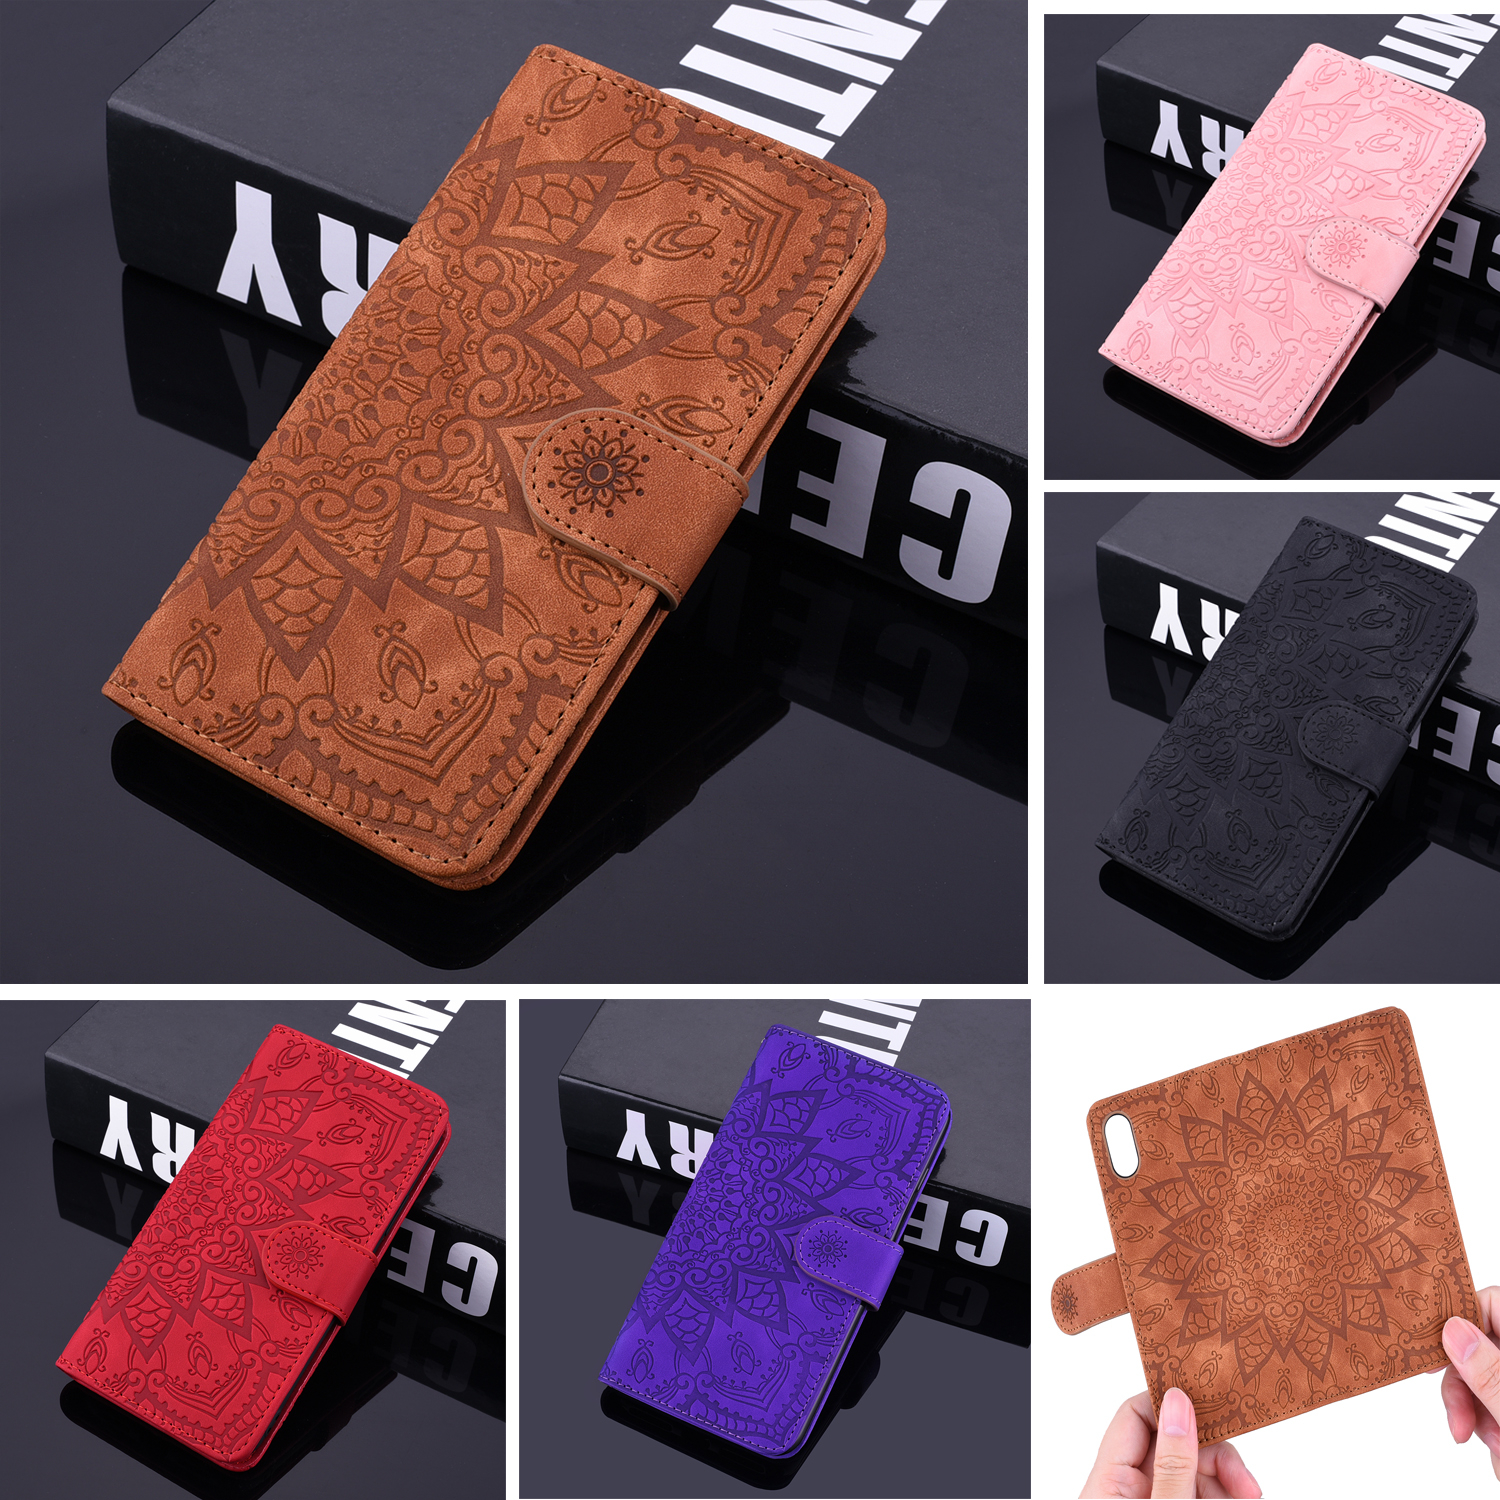 3D Flower Leather Case For Samsung Galaxy A50 A70 A30 A20 A40 A10 A750 A80 A90 J3 J5 J7 A5 A6 A7 A8 A9 J6 J4 Plus M30S Coque